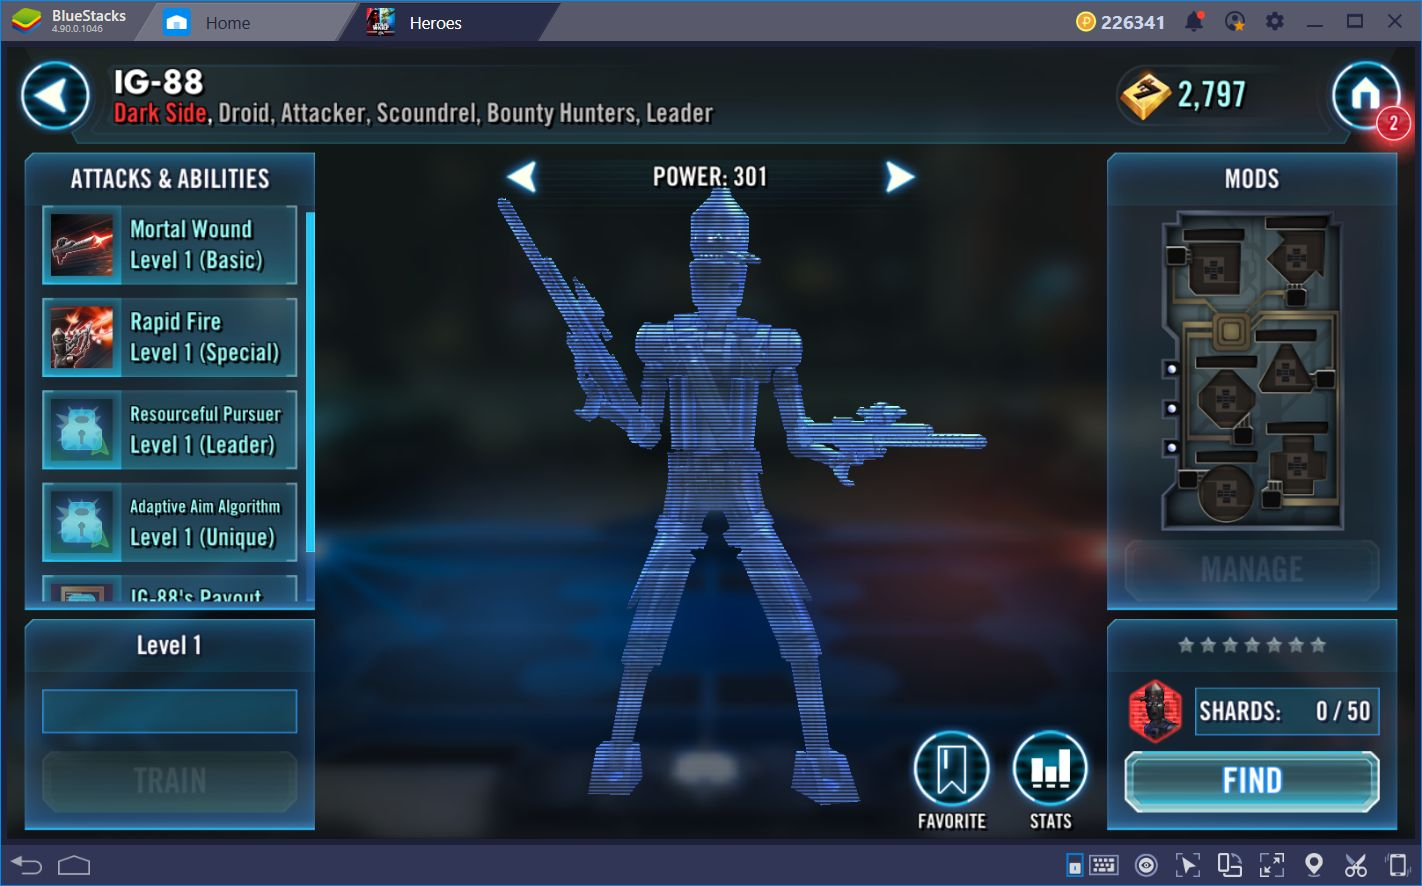 Combat Guide for Star Wars: Galaxy of Heroes